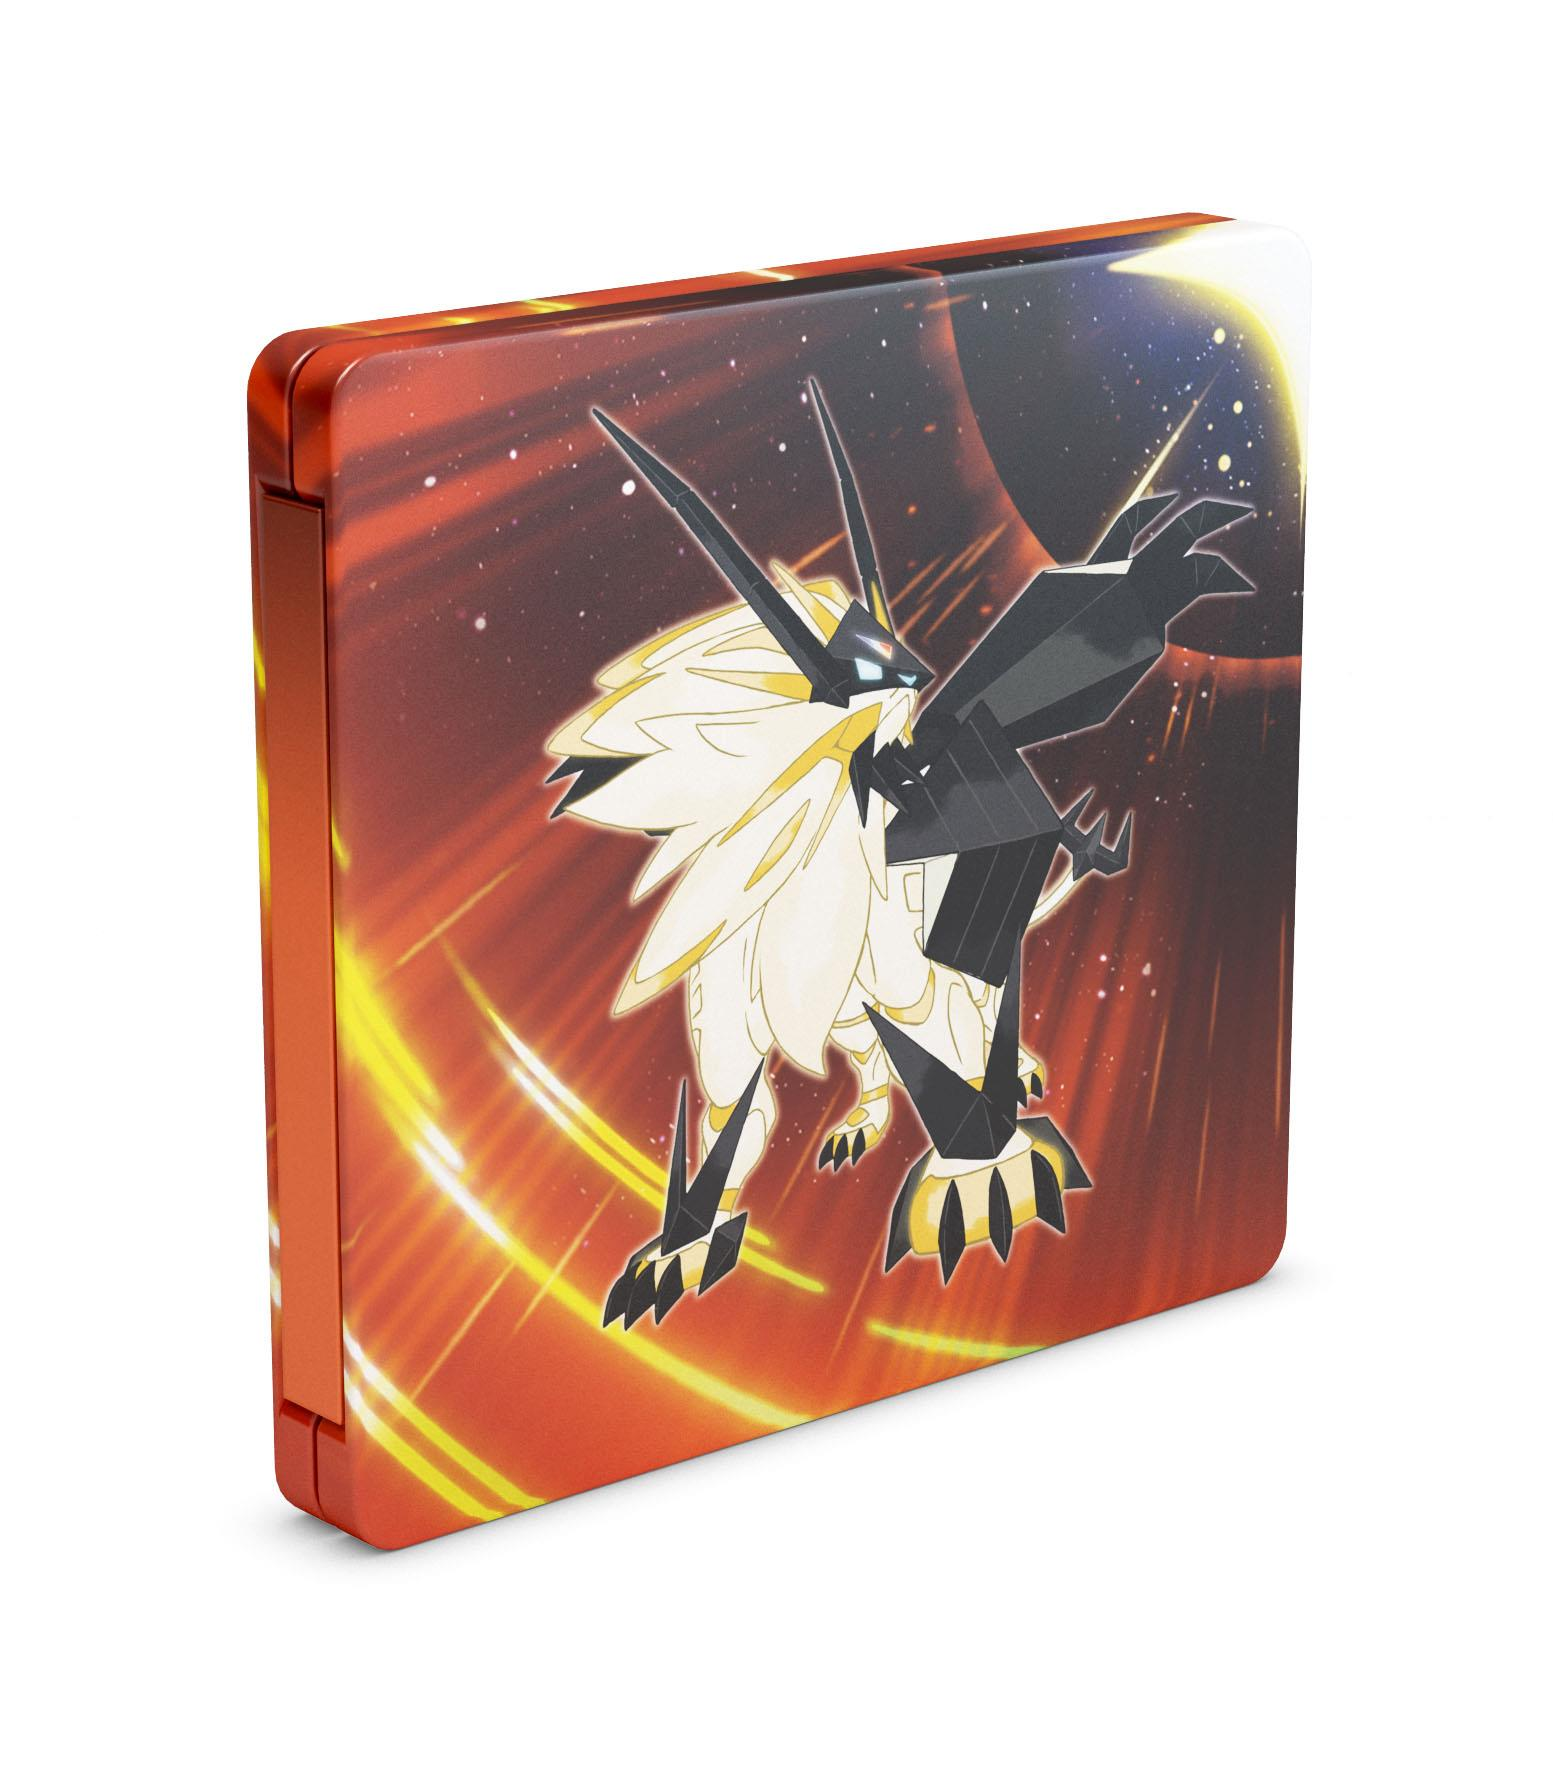 Pokemon Ultra Sun Steelbook - 3DS